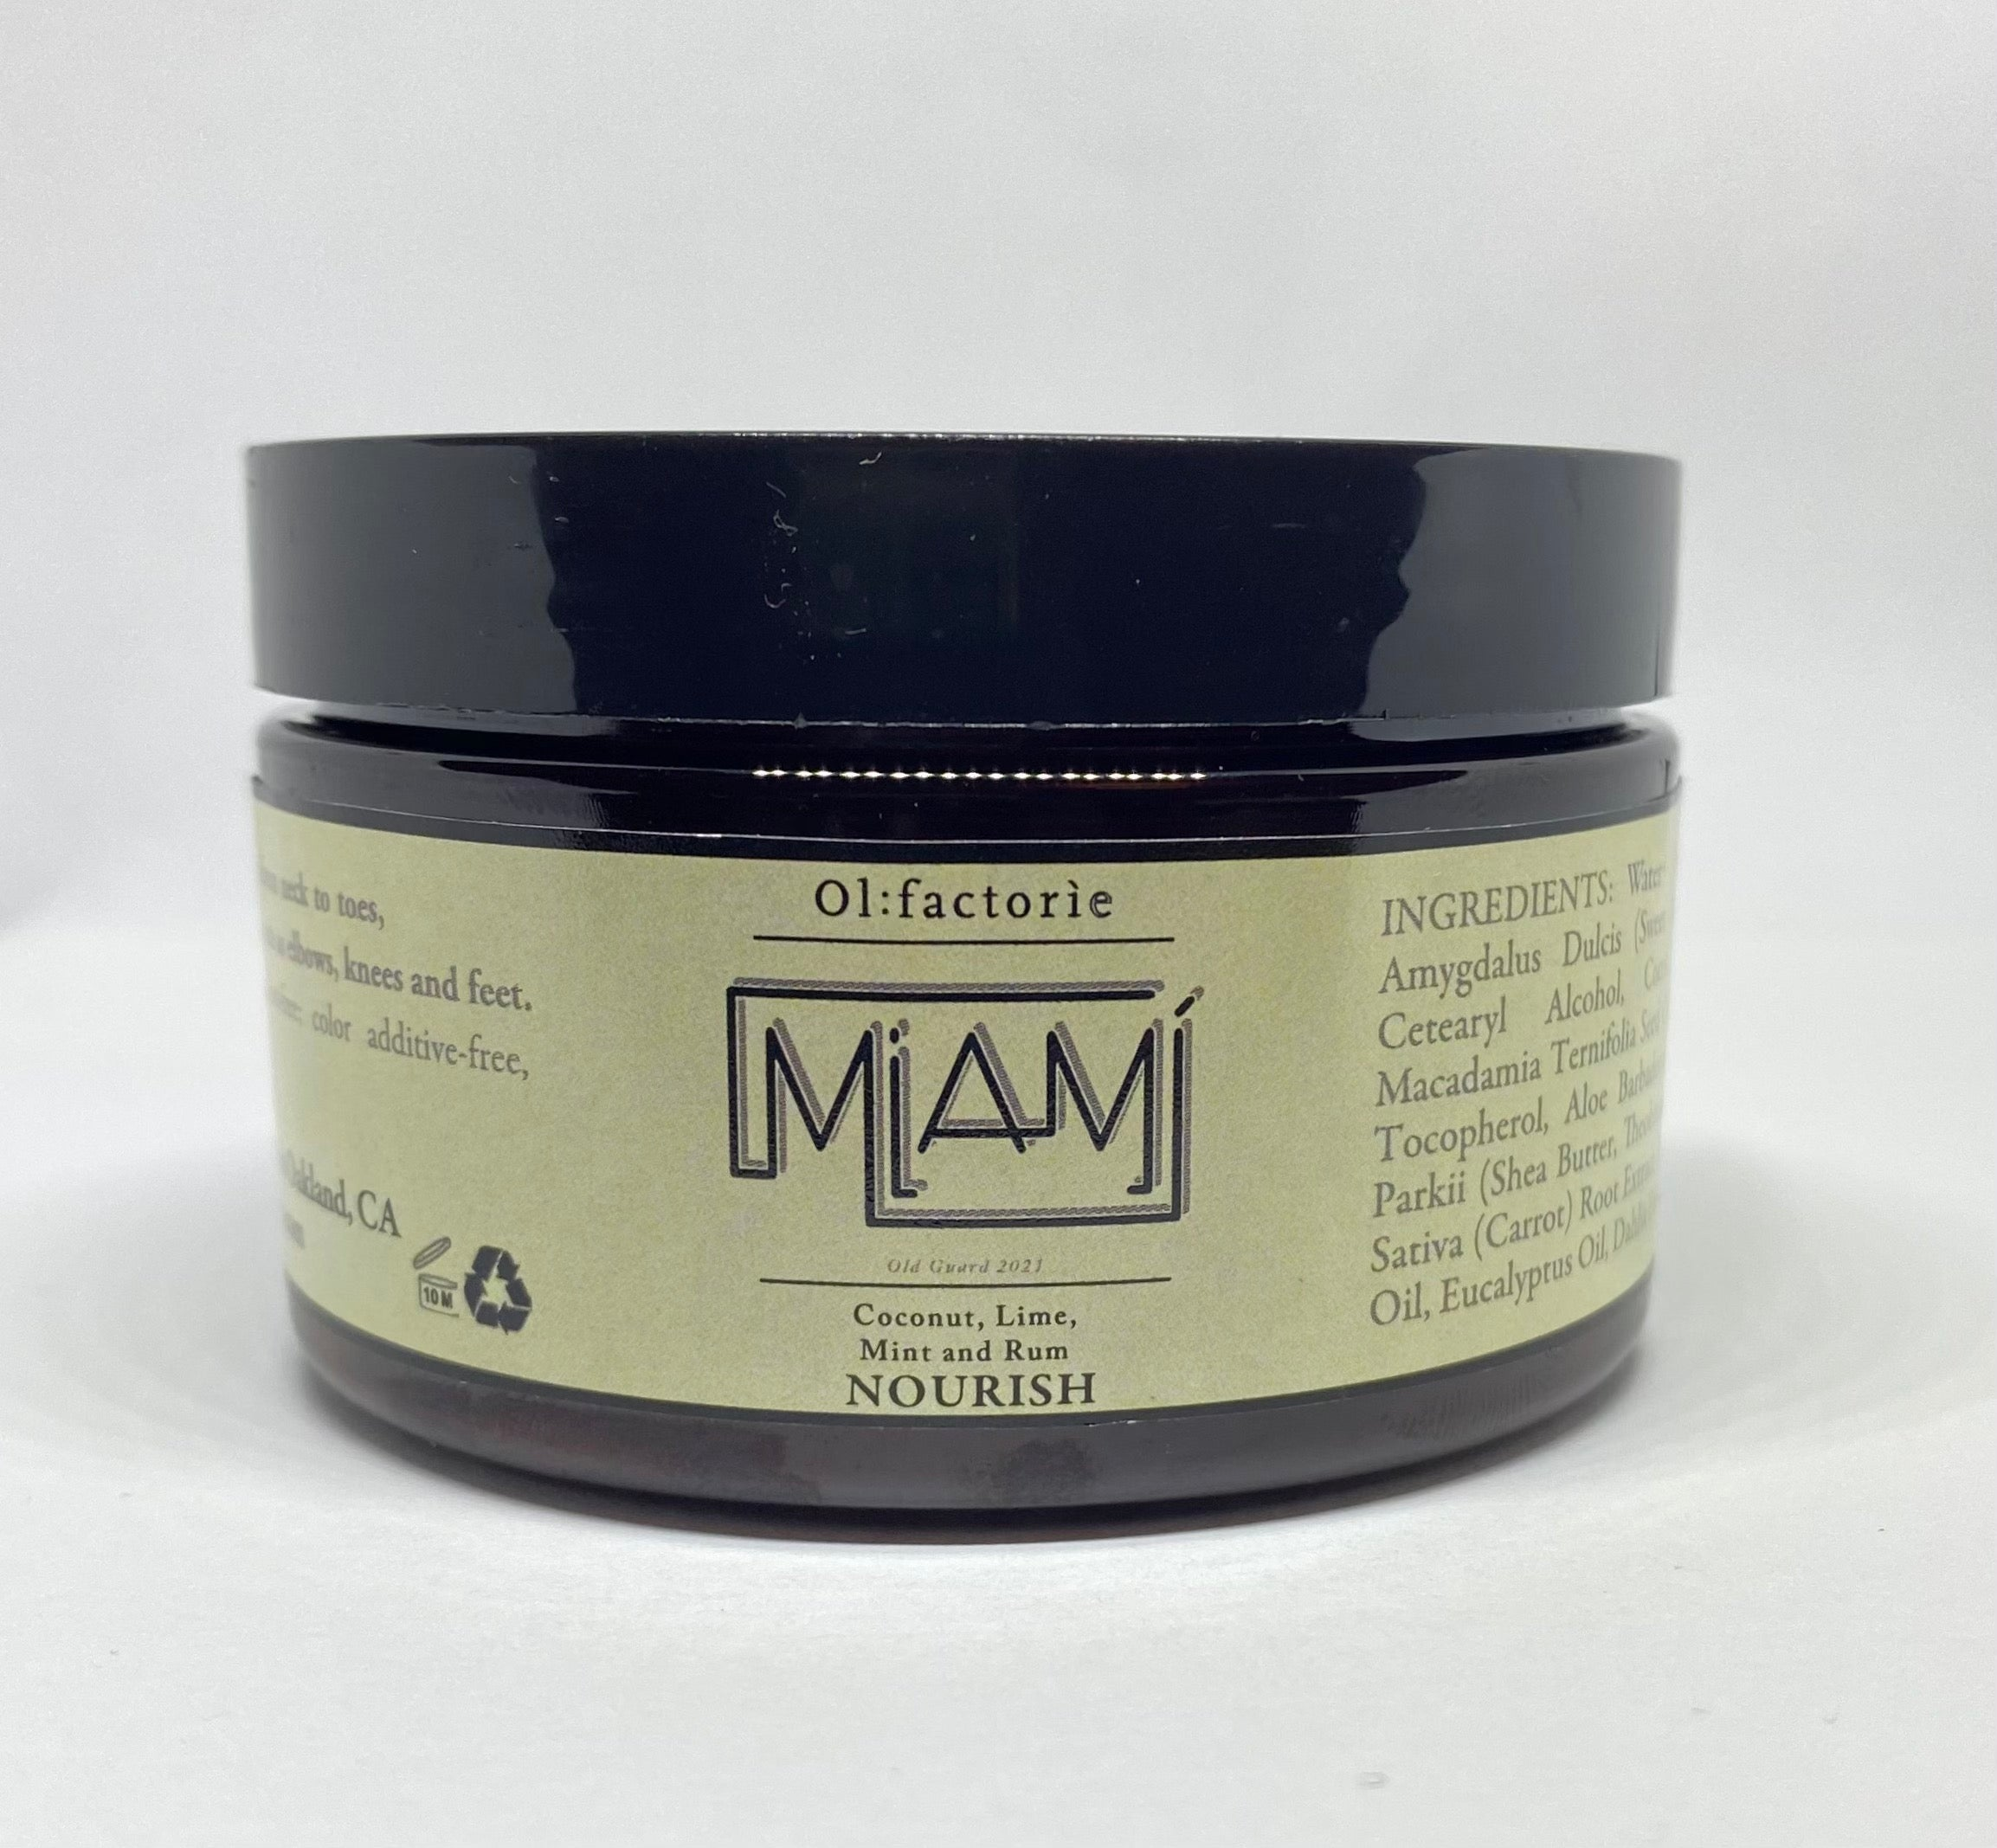 Miami Nourish - Olfactorie Candles + Apothecary Boutique